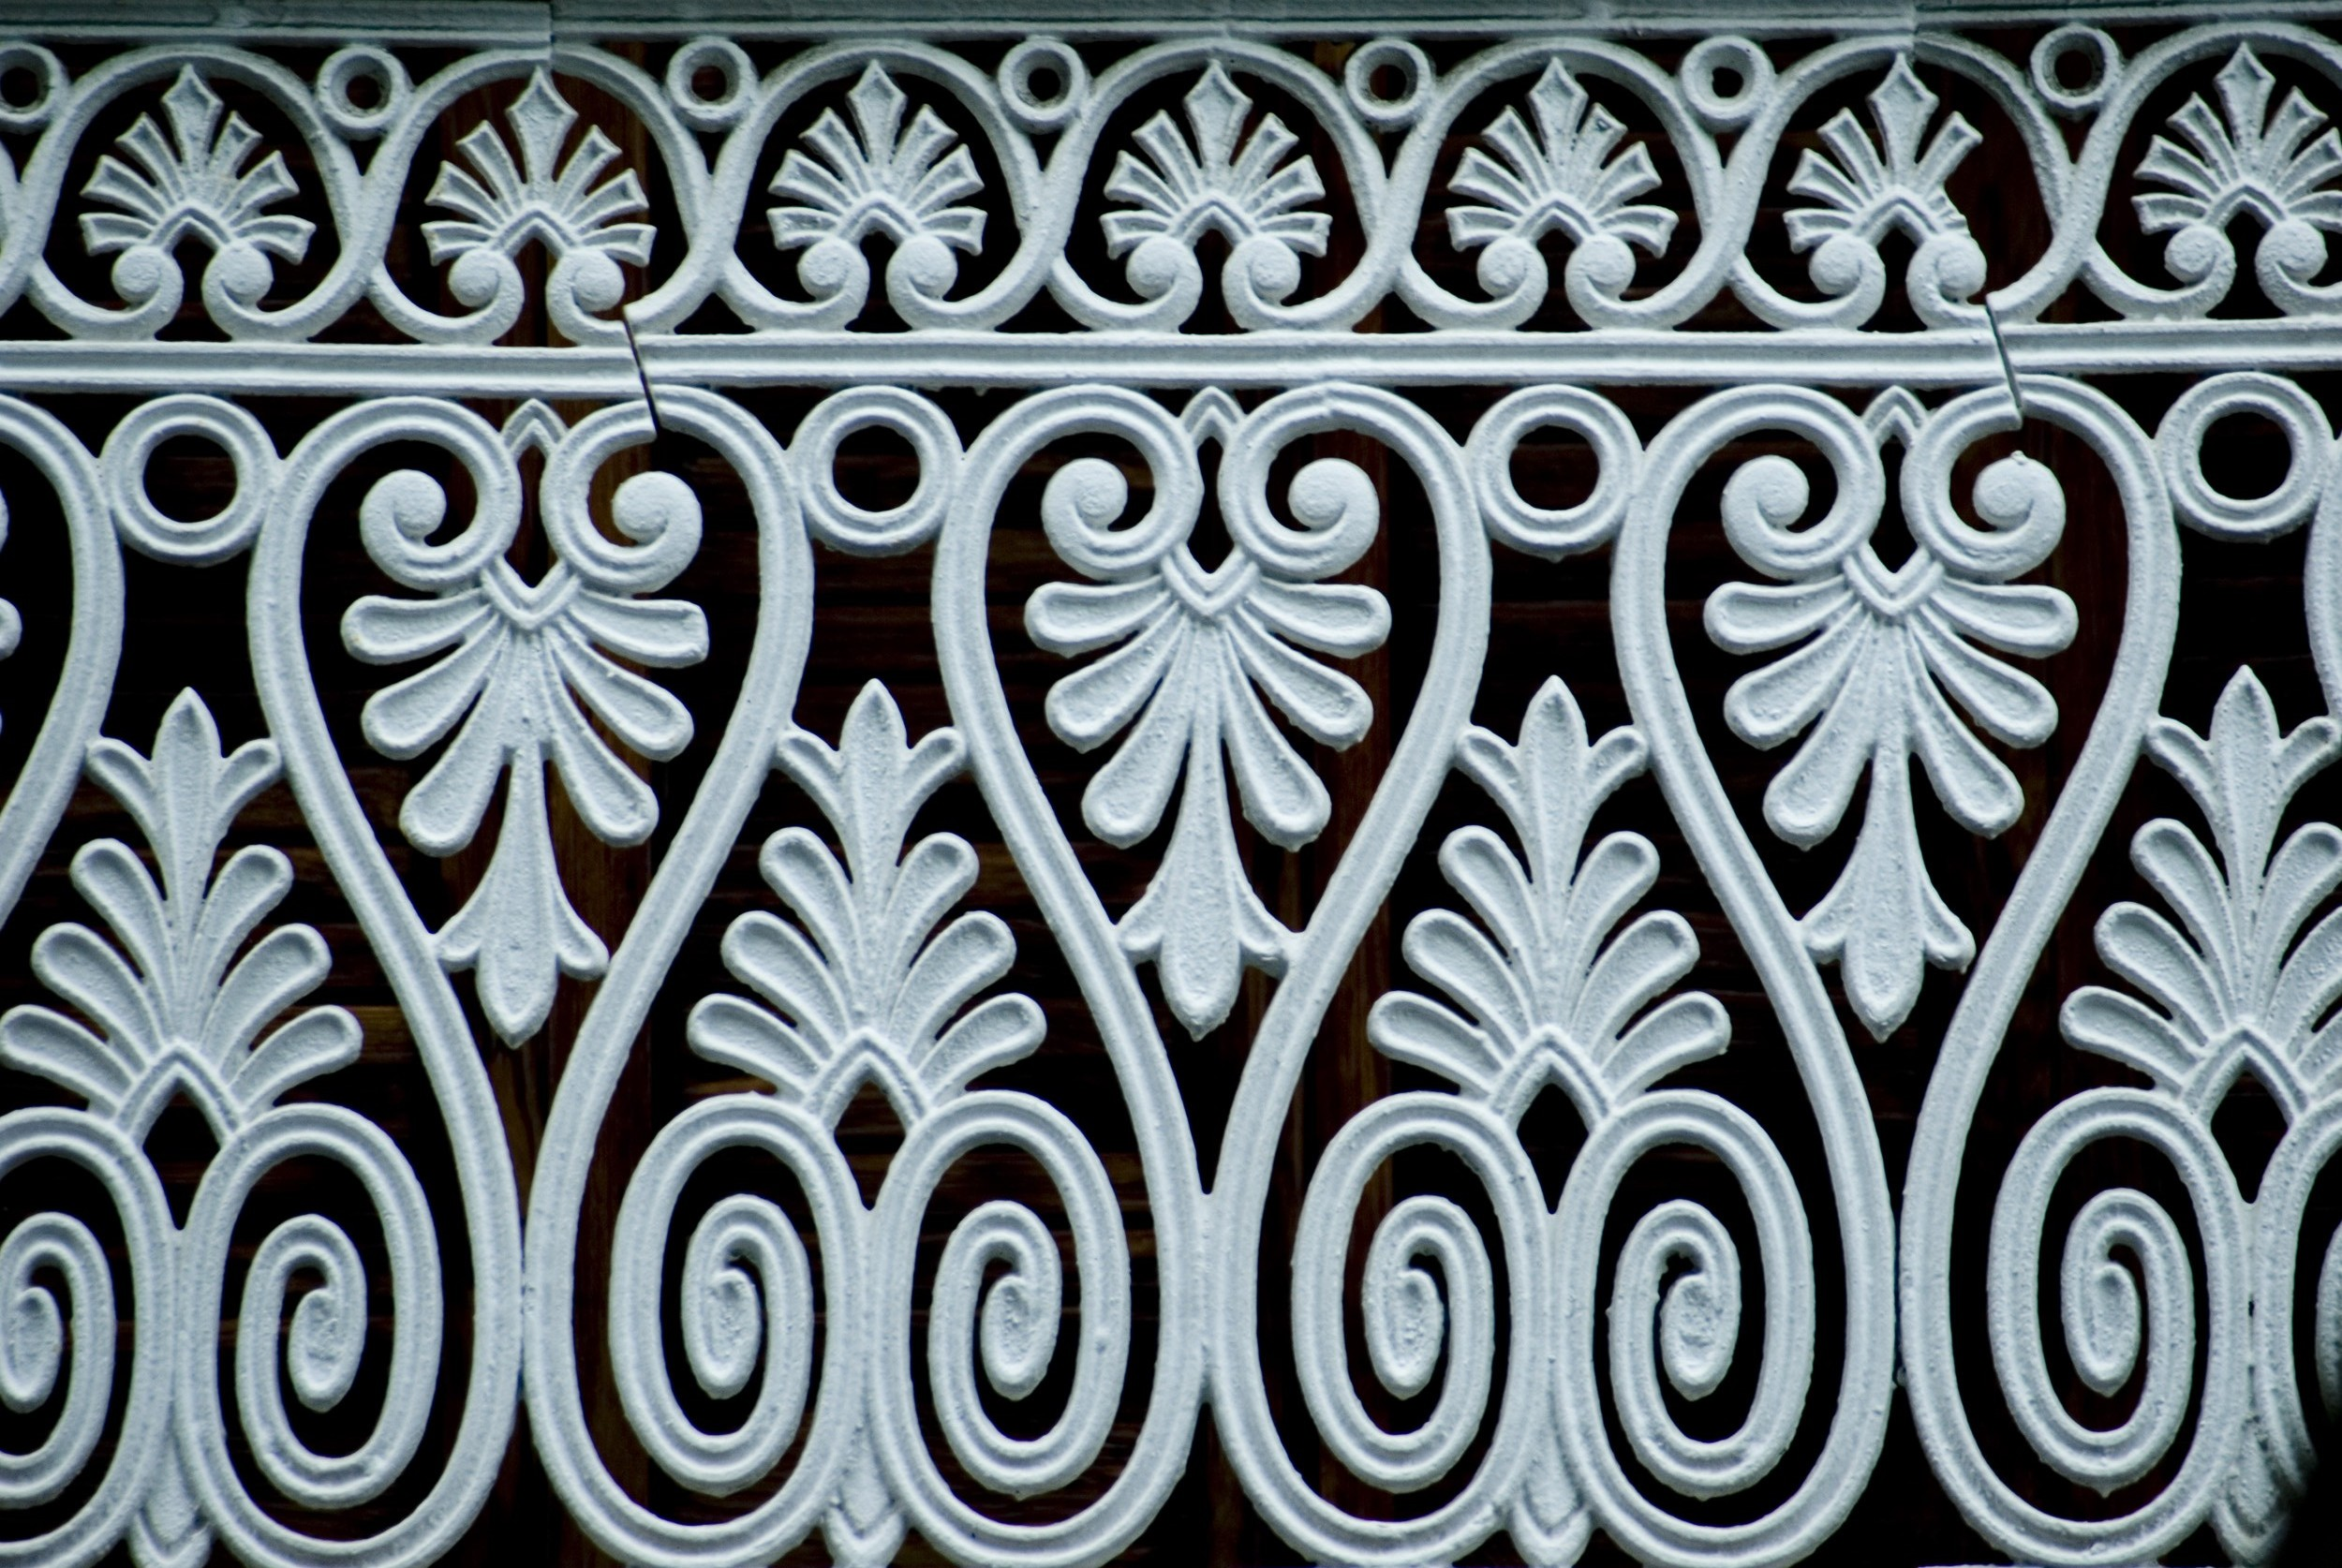 ornate ironwork railing